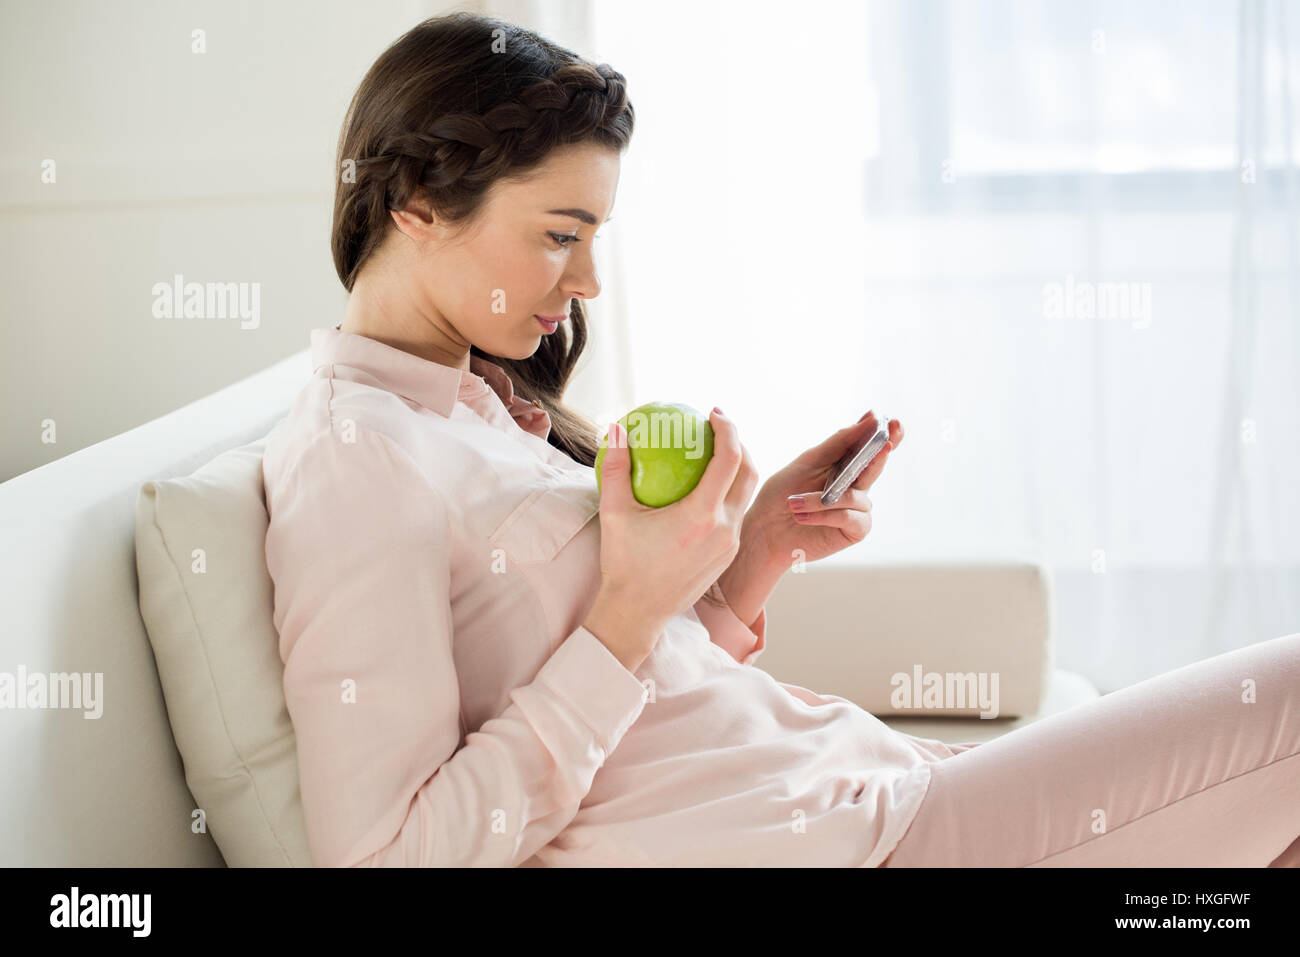 side view of concentrated woman with apple using smartphone - Stock Image